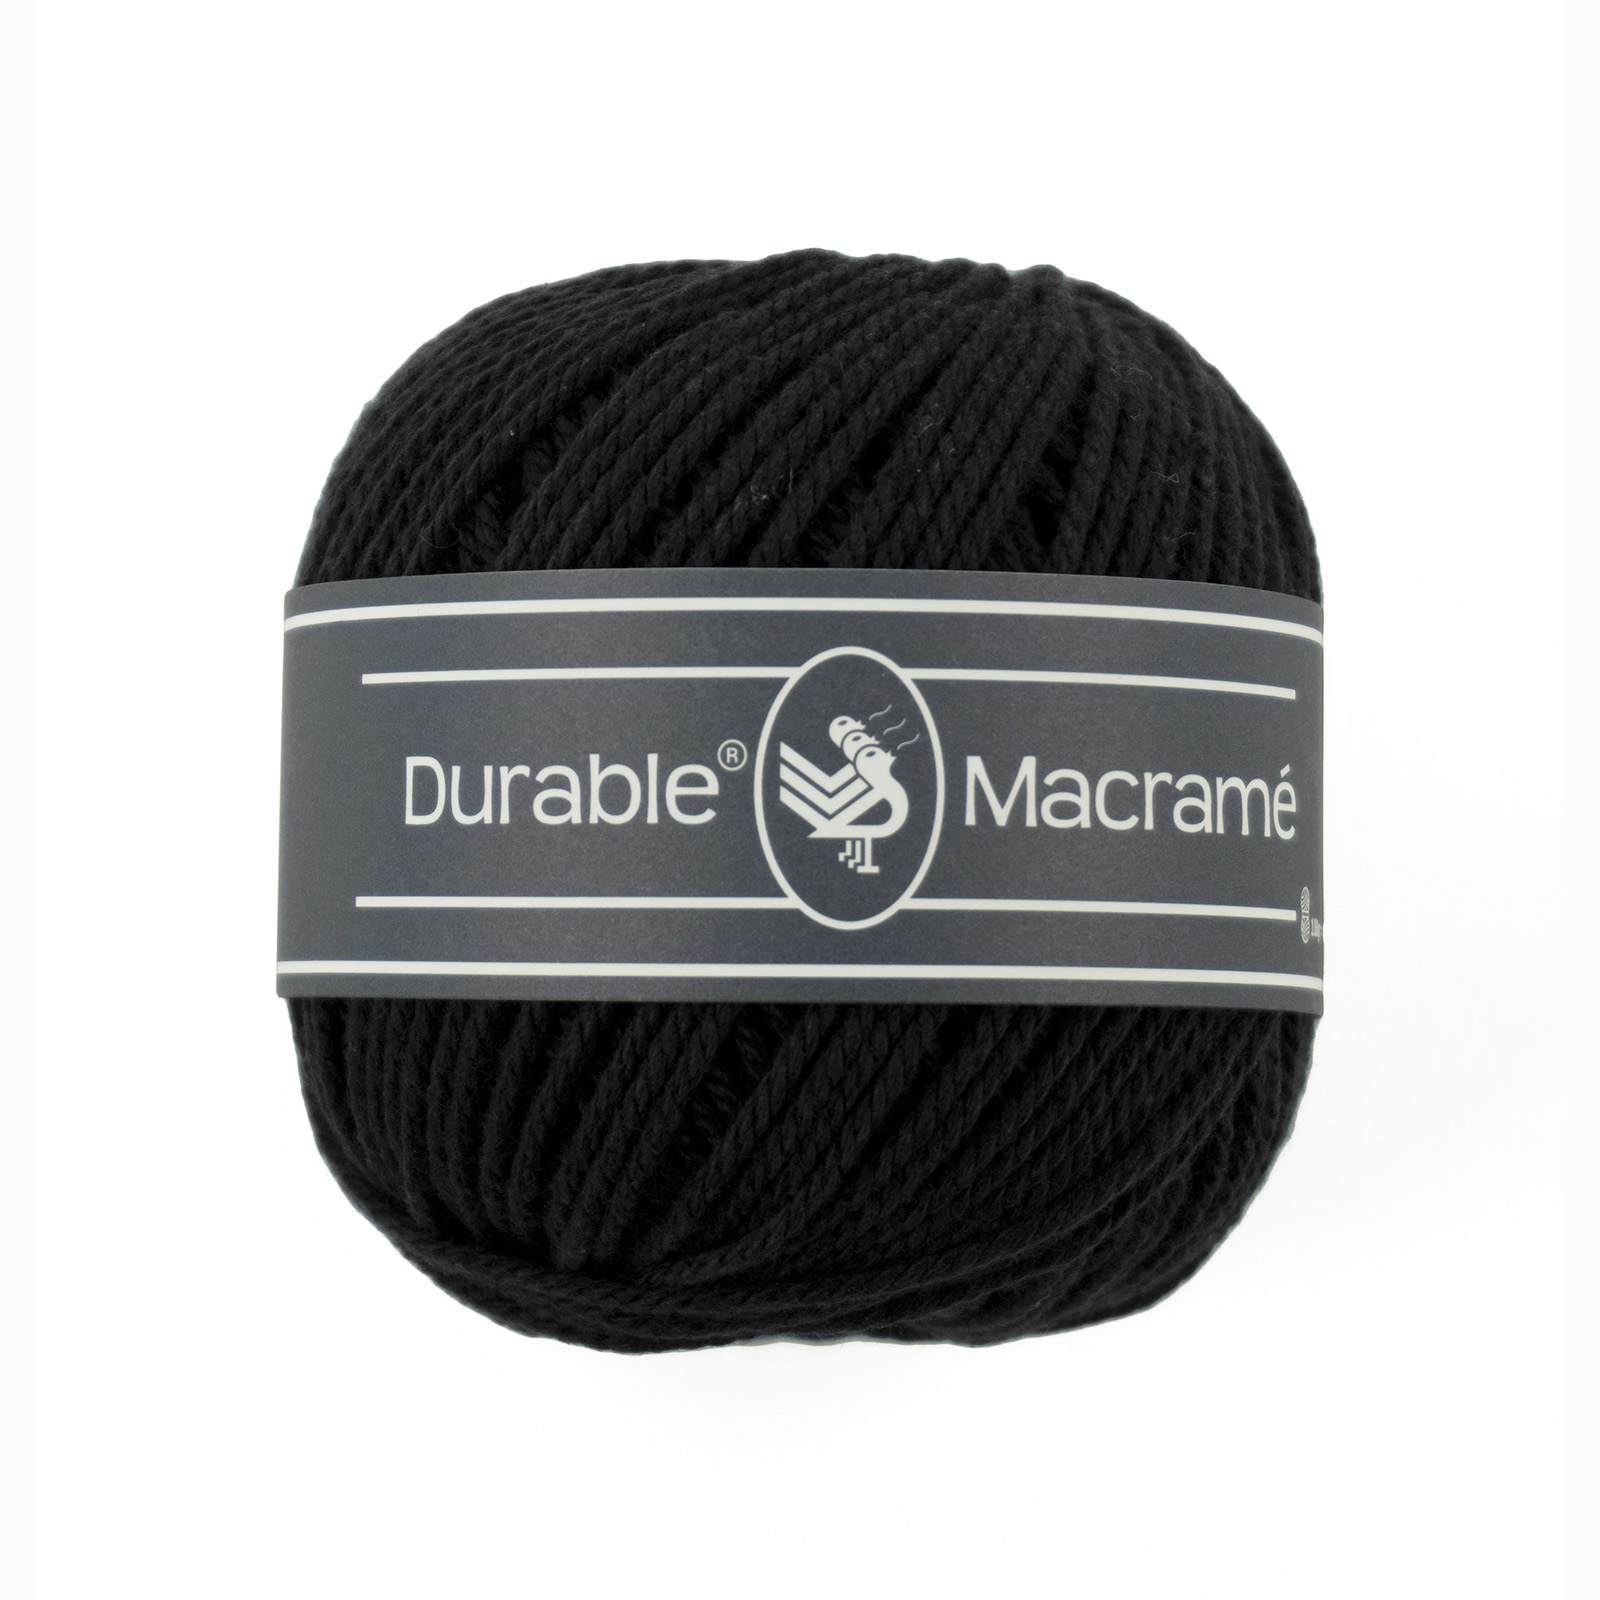 Macramé – 325 Black